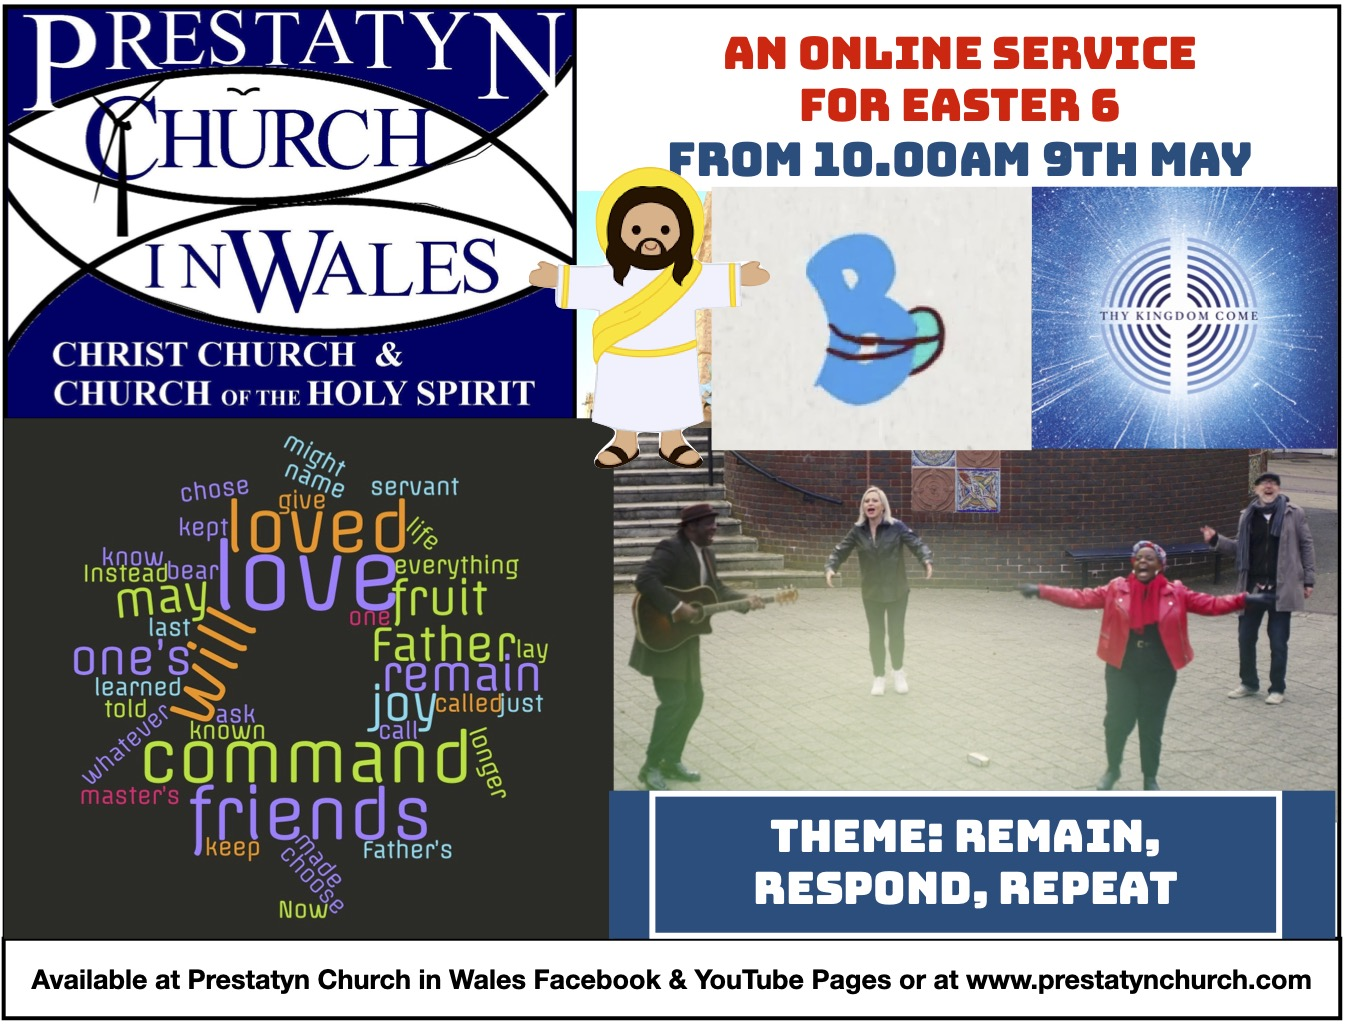 """Image containing text. Text reads: """"Prestatyn Church In Wales. Christ Church & Church of the Holy Spirit."""" """"An online Service for Easter 6. From 10:00 AM 9th May."""" """"Theme: Remain, Respond, Repeat."""" """"Available at Prestatyn Church In Wales Facebook and Youtube pages and at www.prestatynchurch.com."""""""